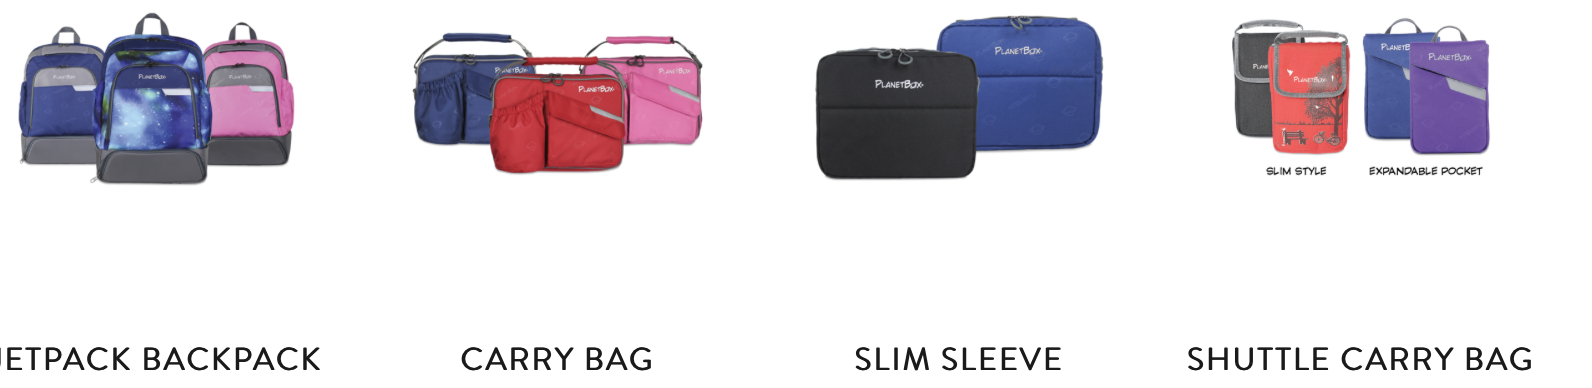 PlanetBox Lunch Boxes - whatthegirlssay.com